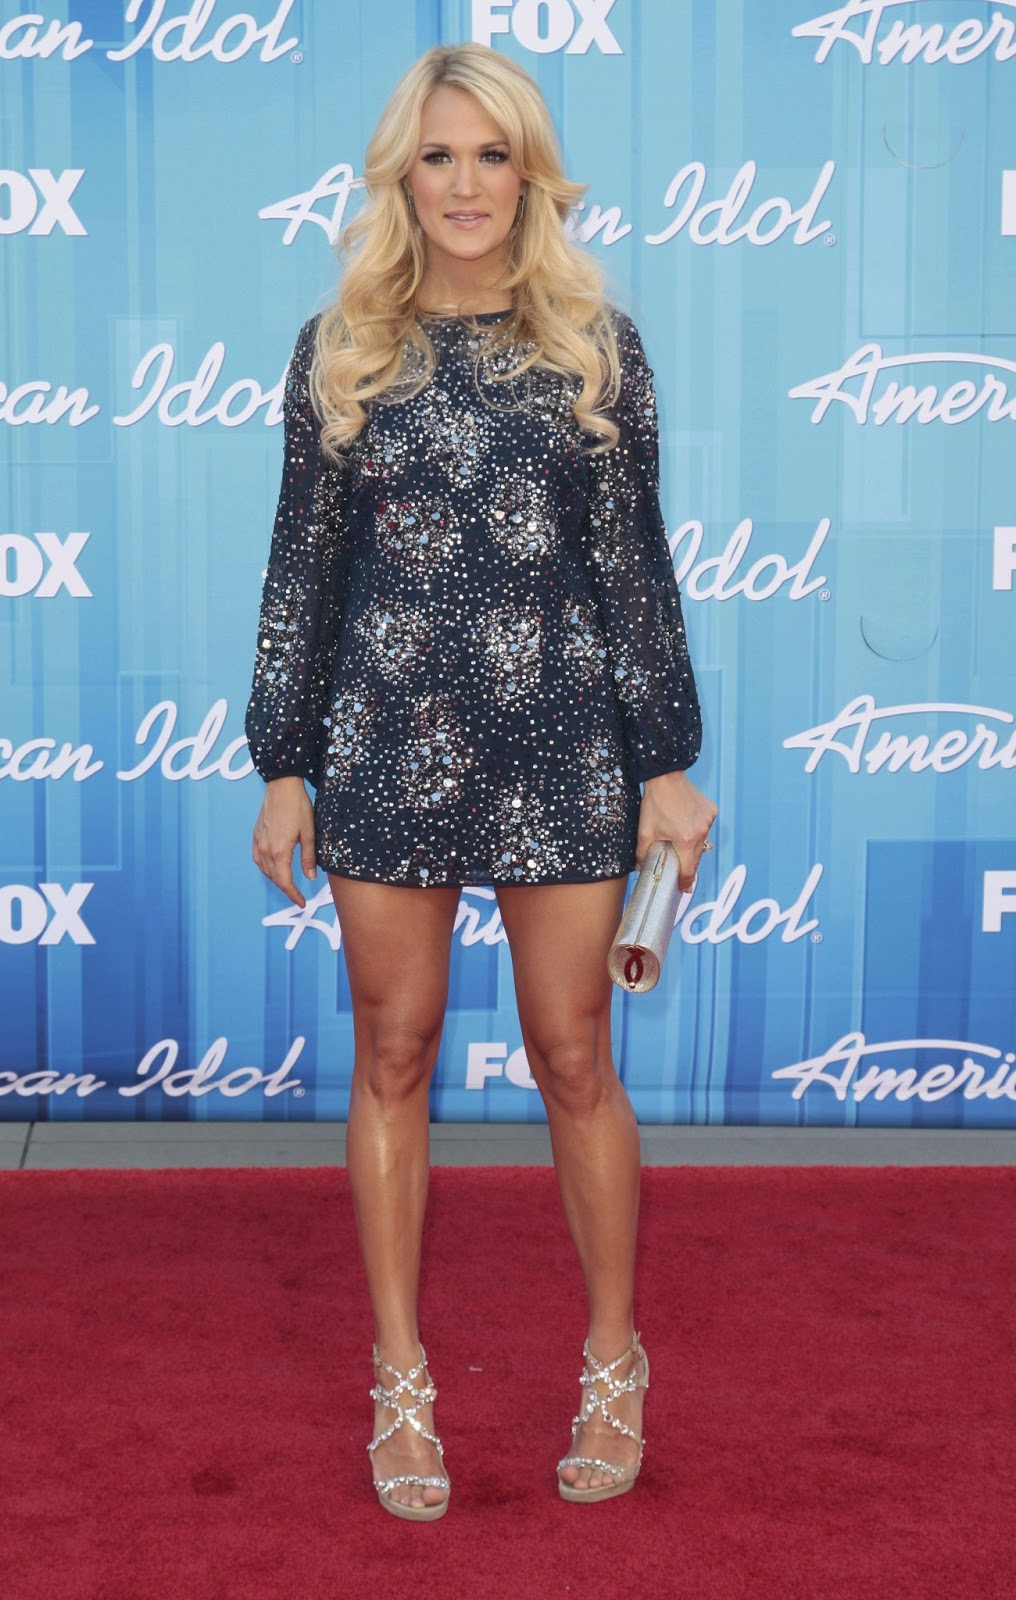 Carrie Underwood Celebrity Shoes Gallery